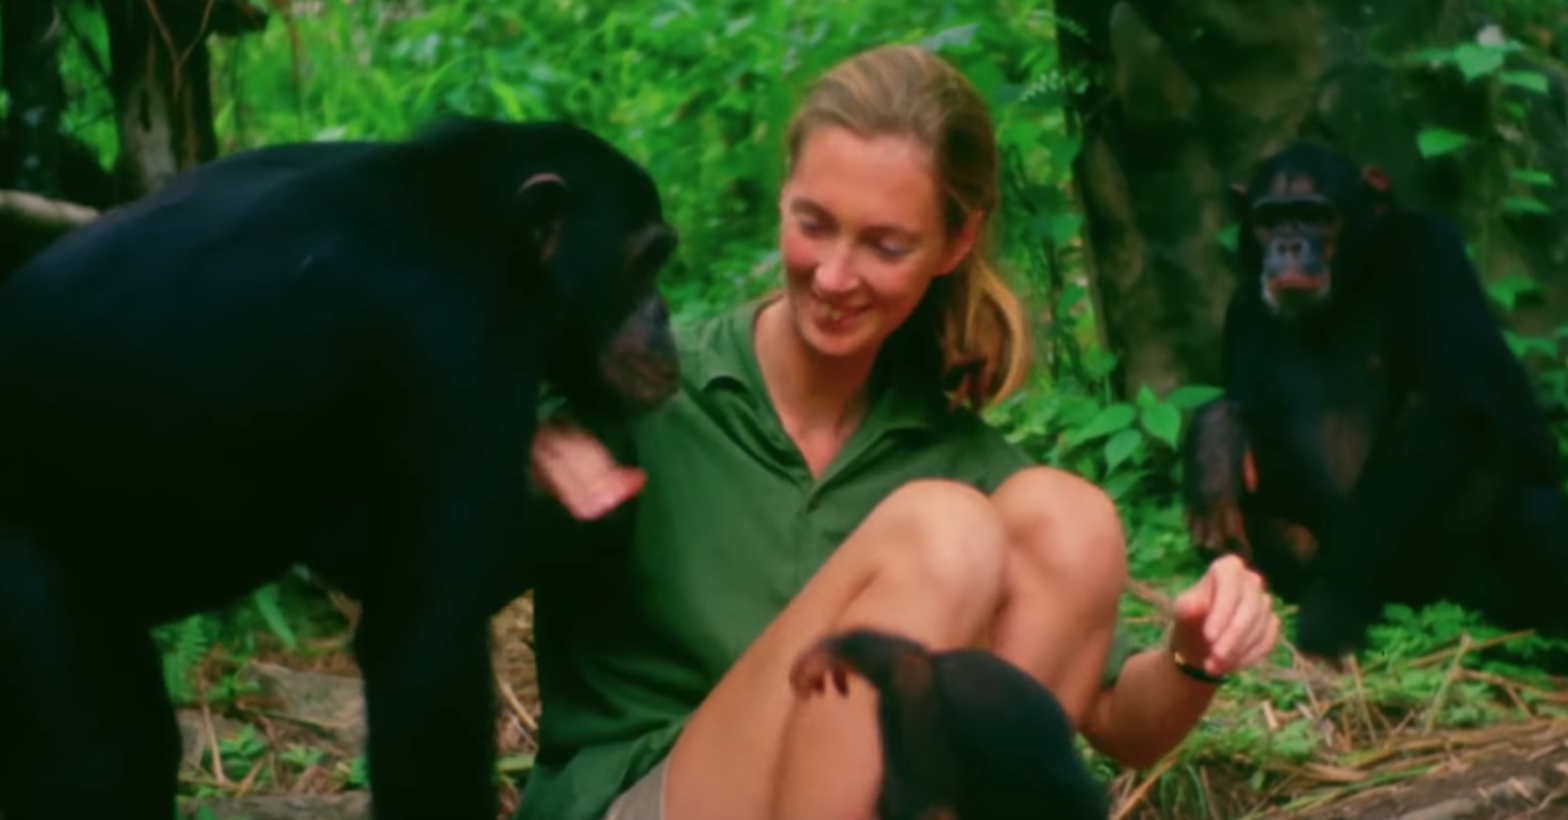 For those of you who don't know who Jane Goodall is, she's an English ethologist who is best known for long-term (almost 60 years!) and detailed research on the chimpanzees of Gombe Stream National Park in Tanzania. And you can learn more about her and her fascinating work here.